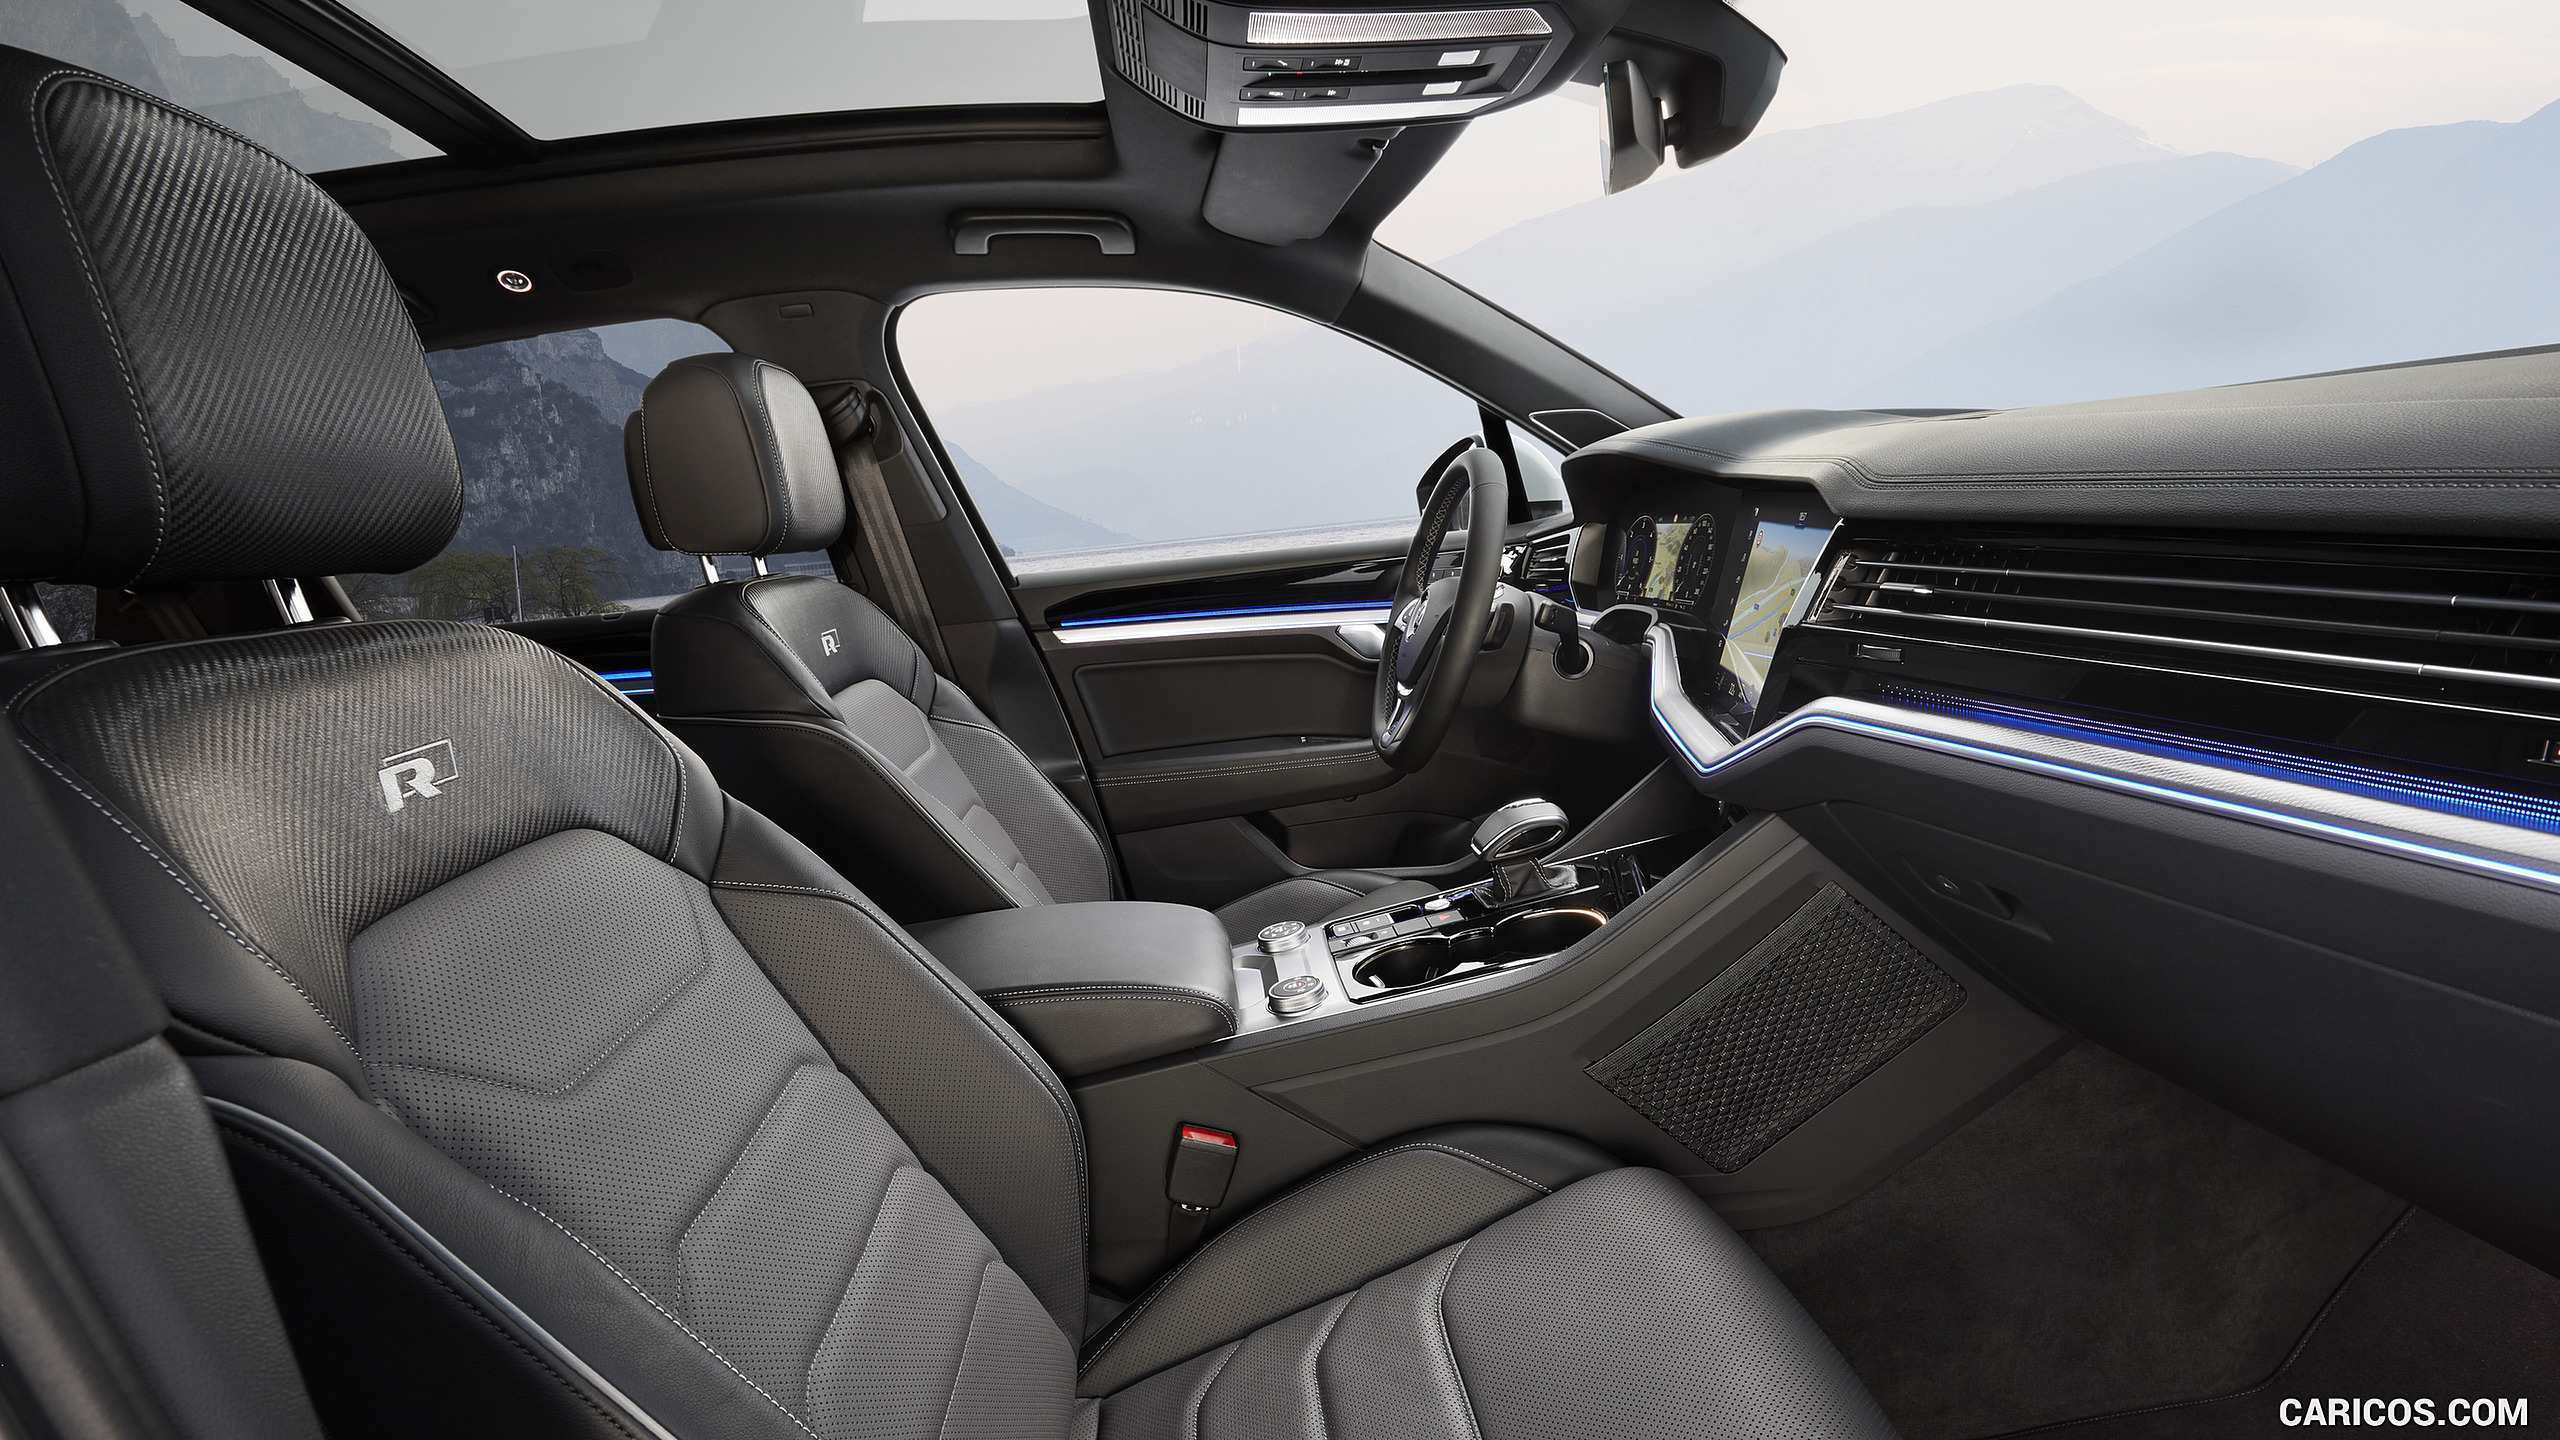 69 New 2019 Volkswagen Touareg Interior Spy Shoot by 2019 Volkswagen Touareg Interior